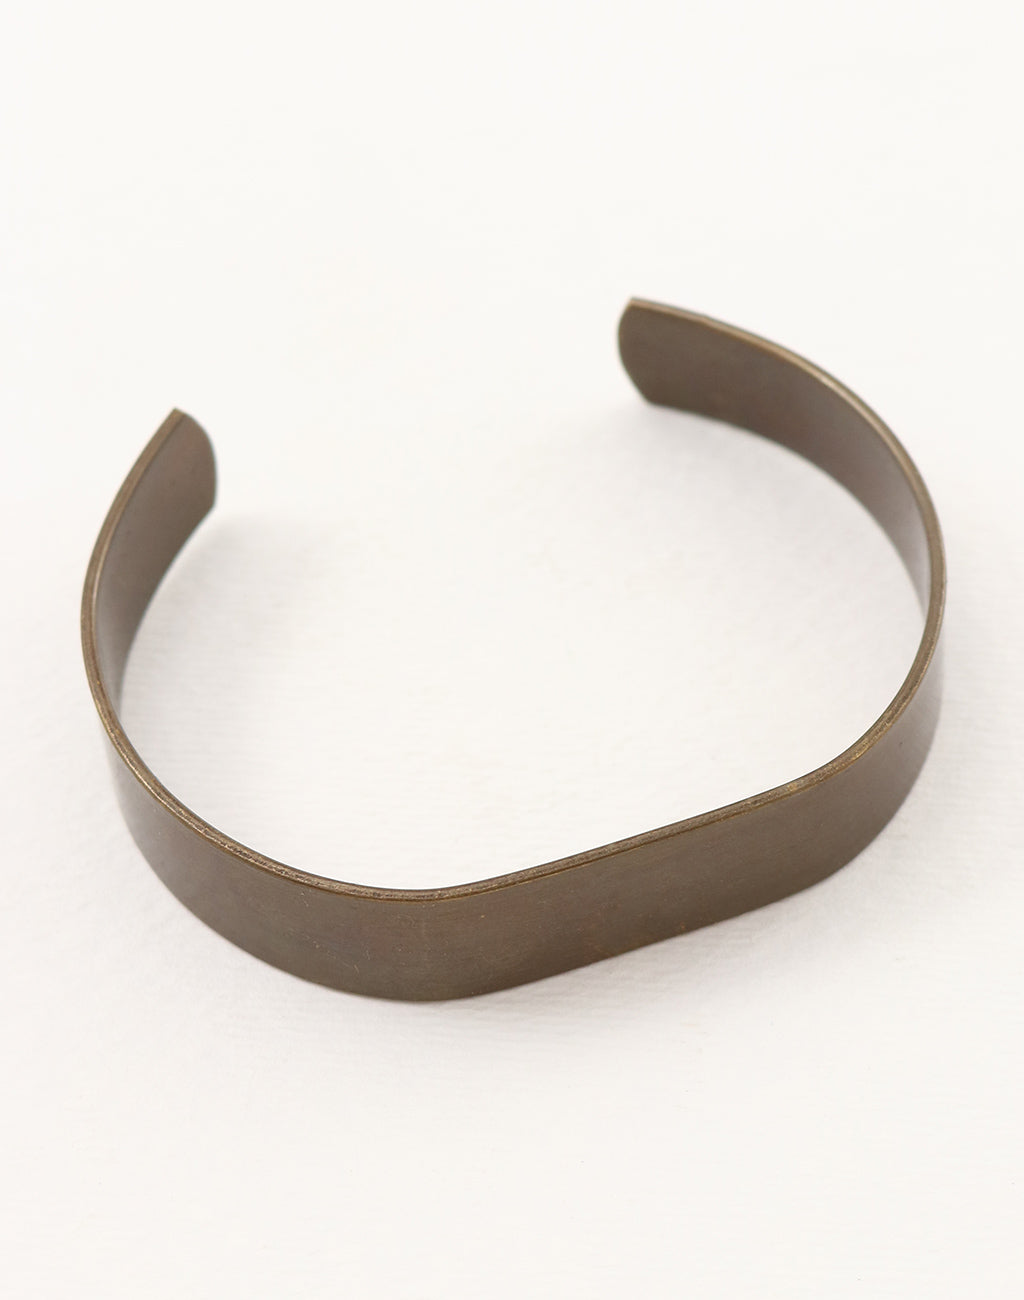 Layer Bangle, 13mm, 18ga, (1pc)